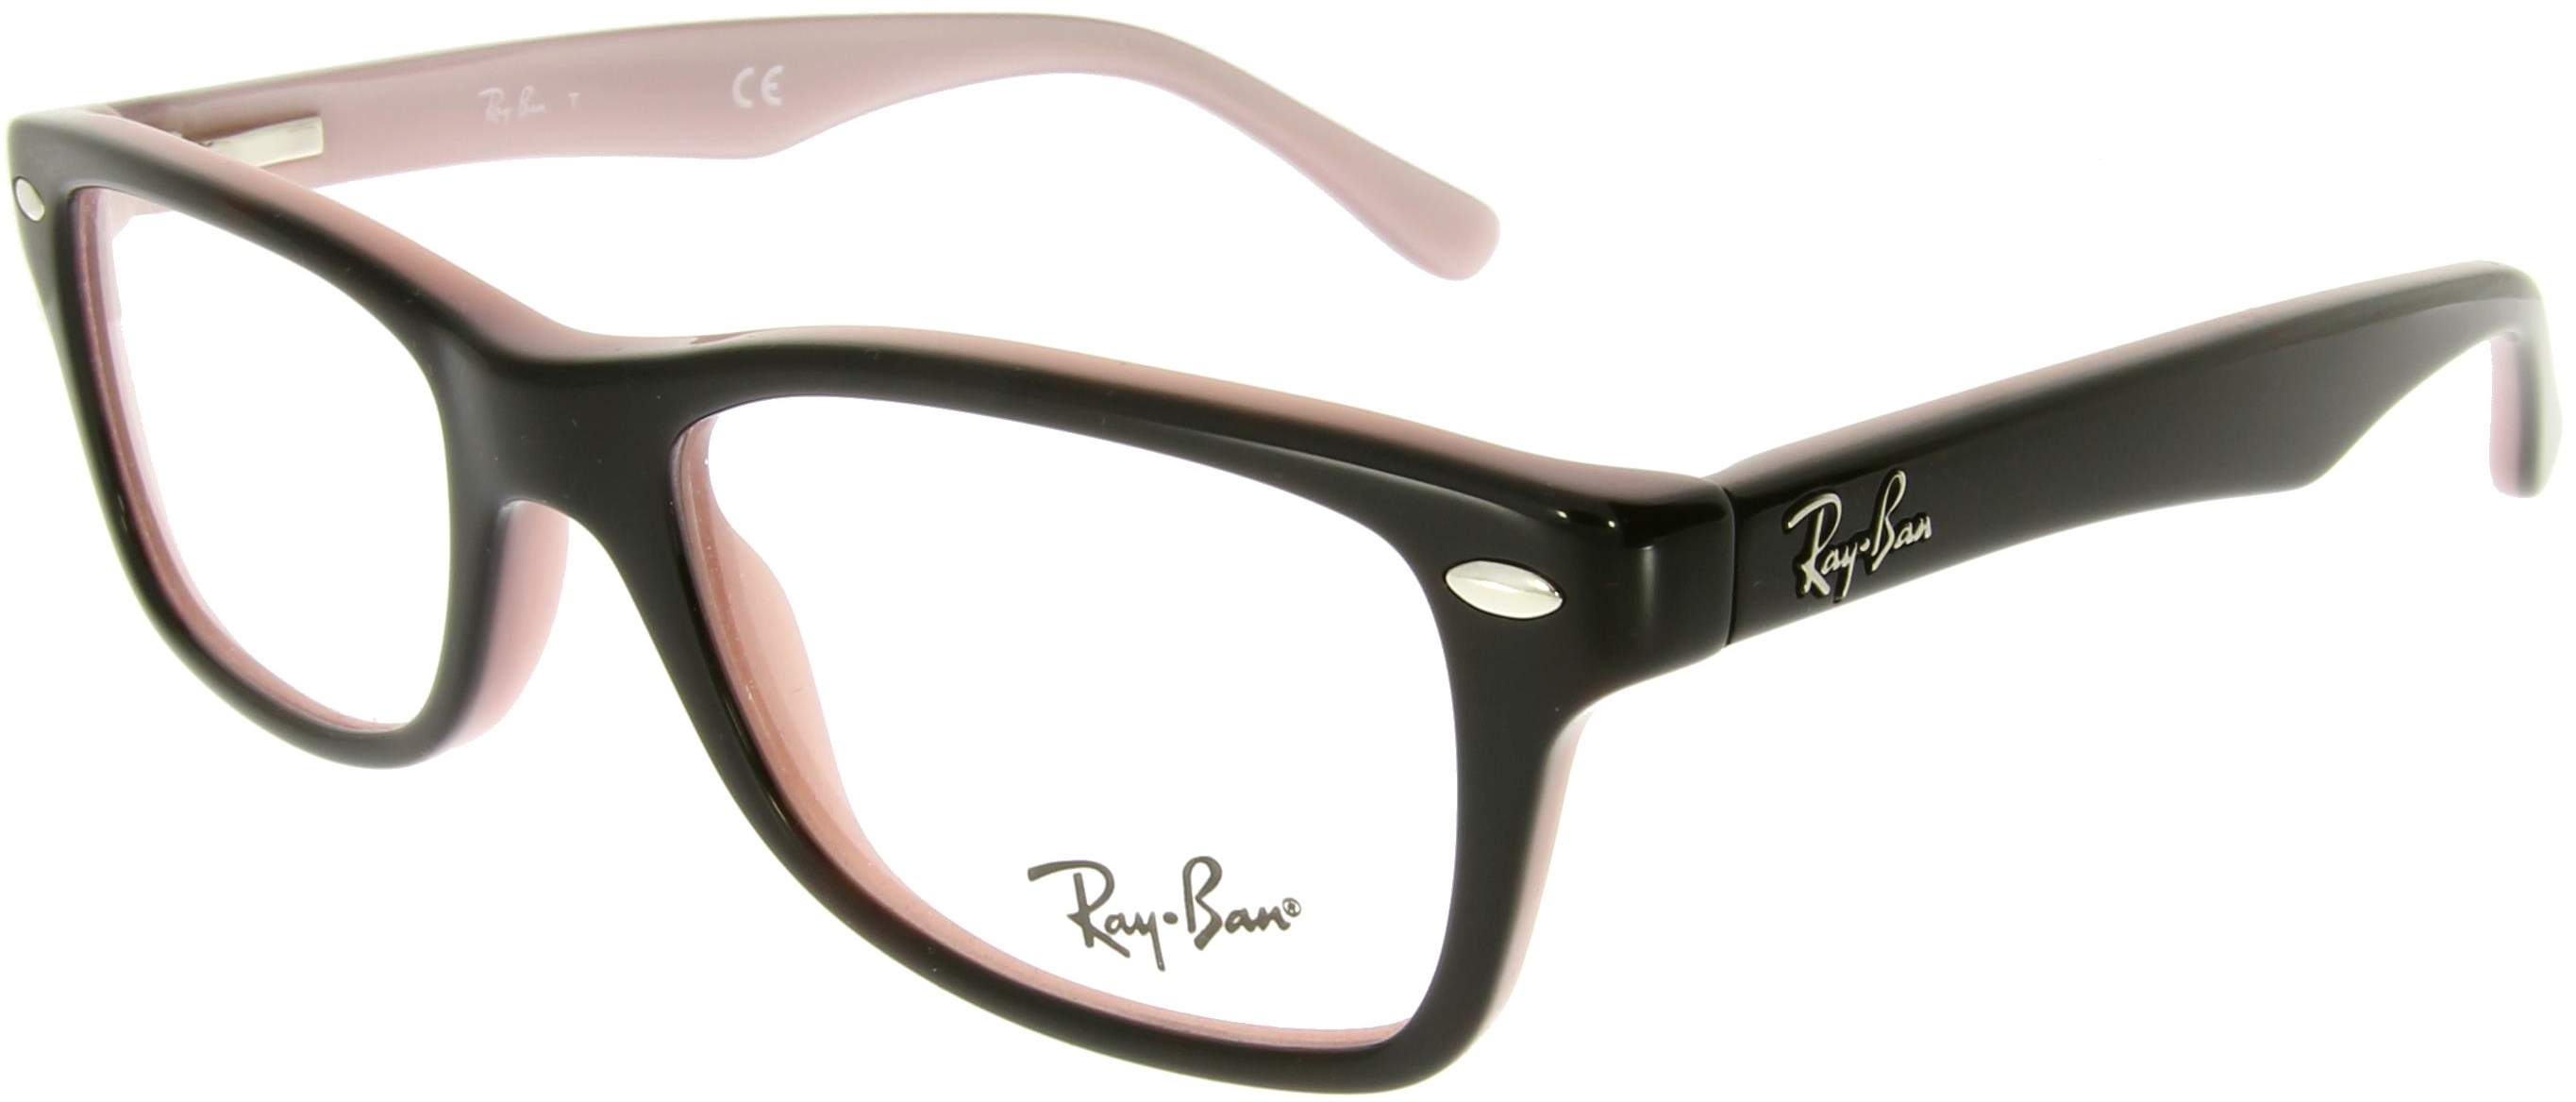 539d57586eda02 Ray Ban Kinderbrille RY 1531 3580 46/125